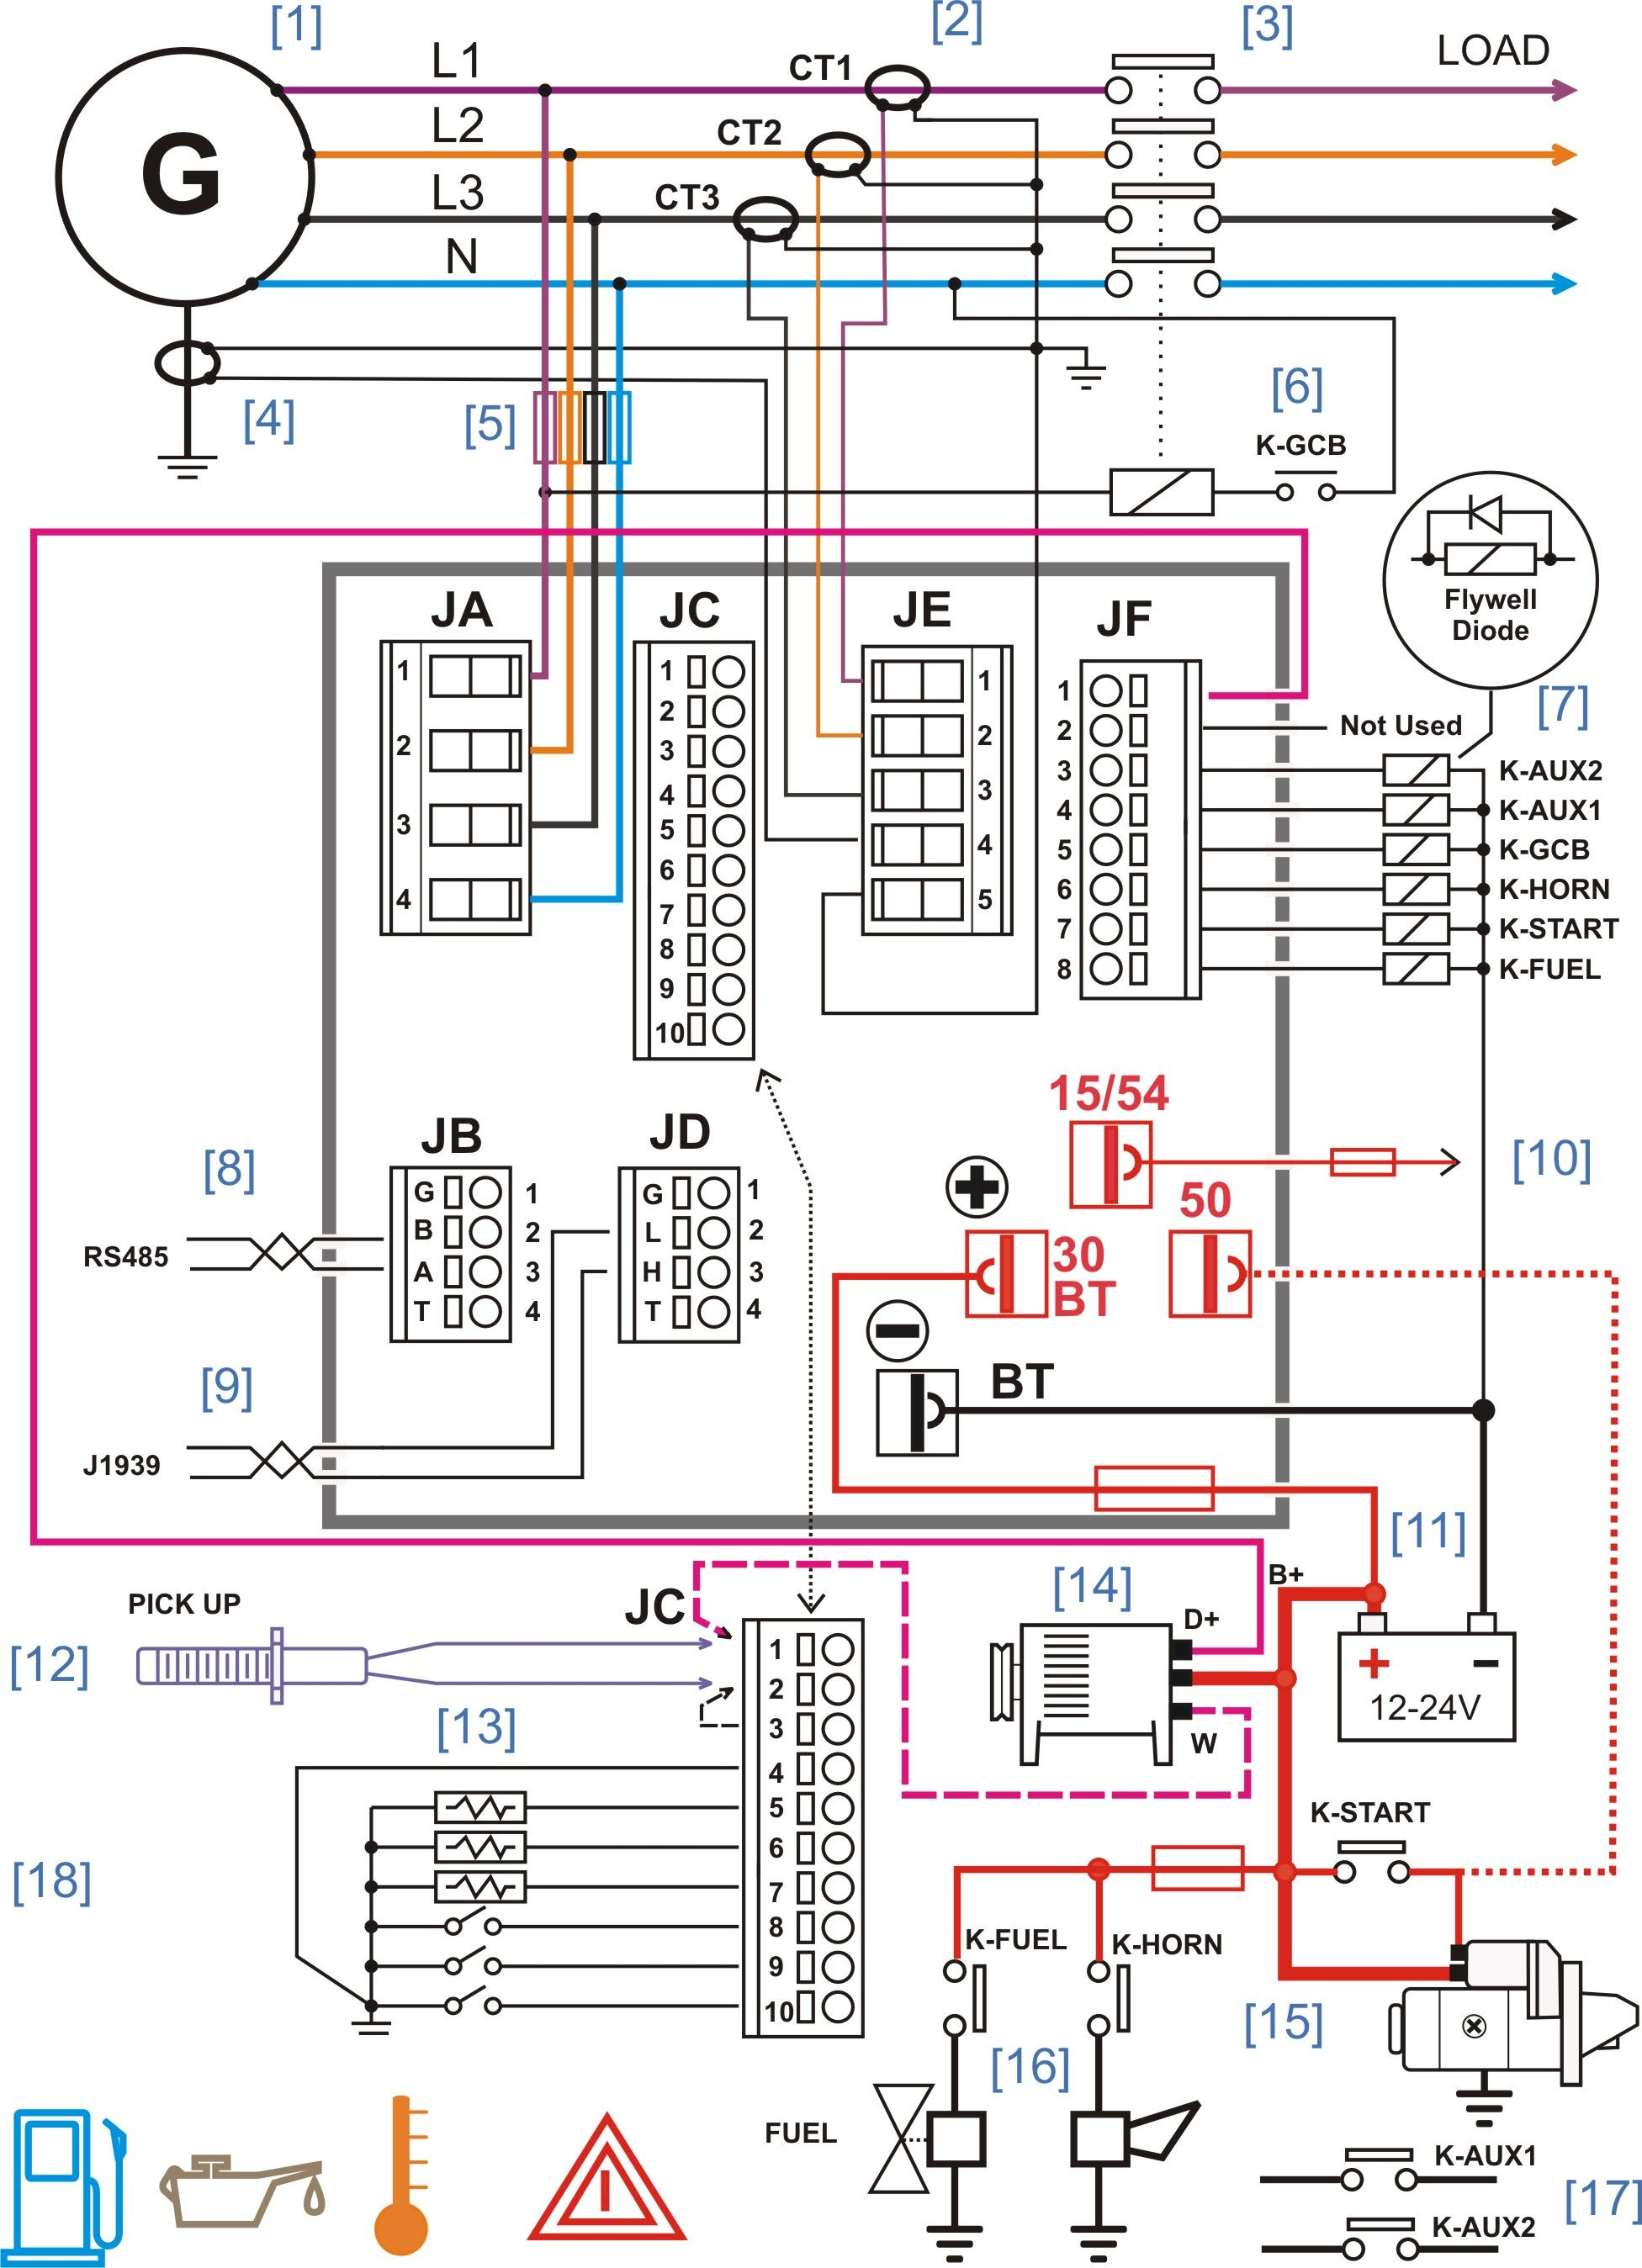 Diesel Generator Control Panel Wiring Diagram Home Electrical Wiring,  Electrical Symbols, Generator Transfer Switch